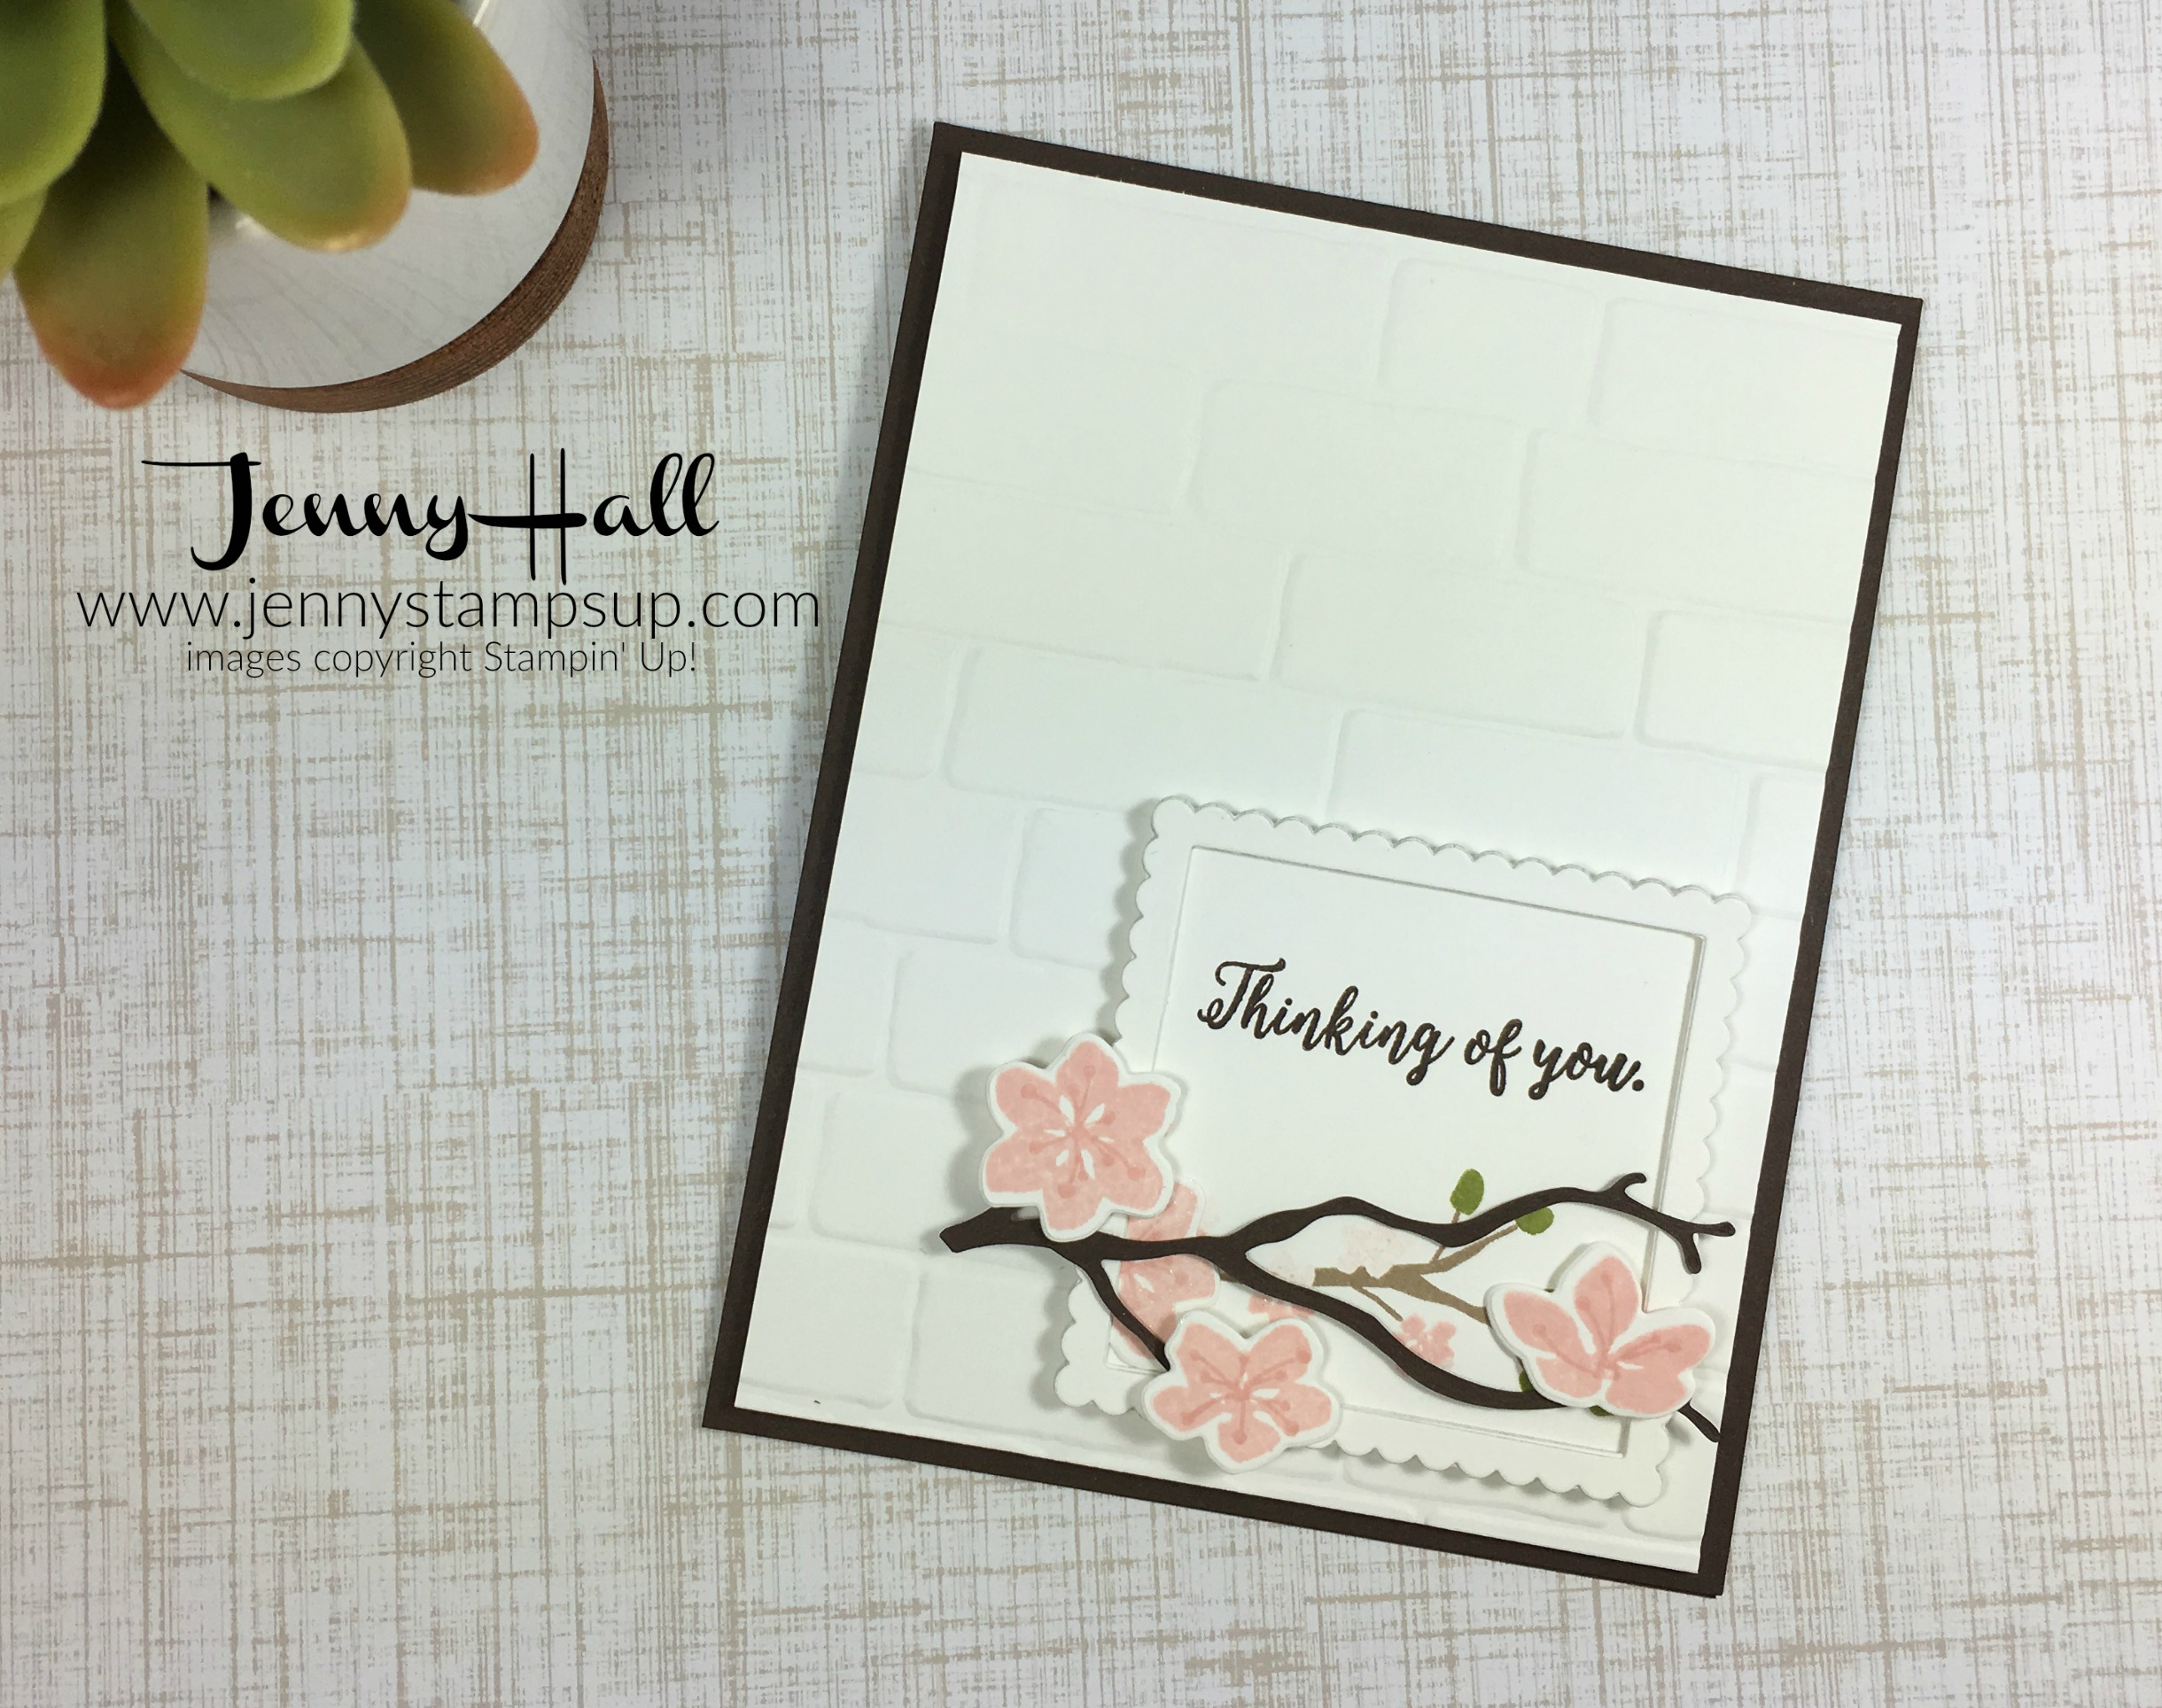 framed sentiment with colorful seasons by Jenny Hall www.jennyhalldesign.com